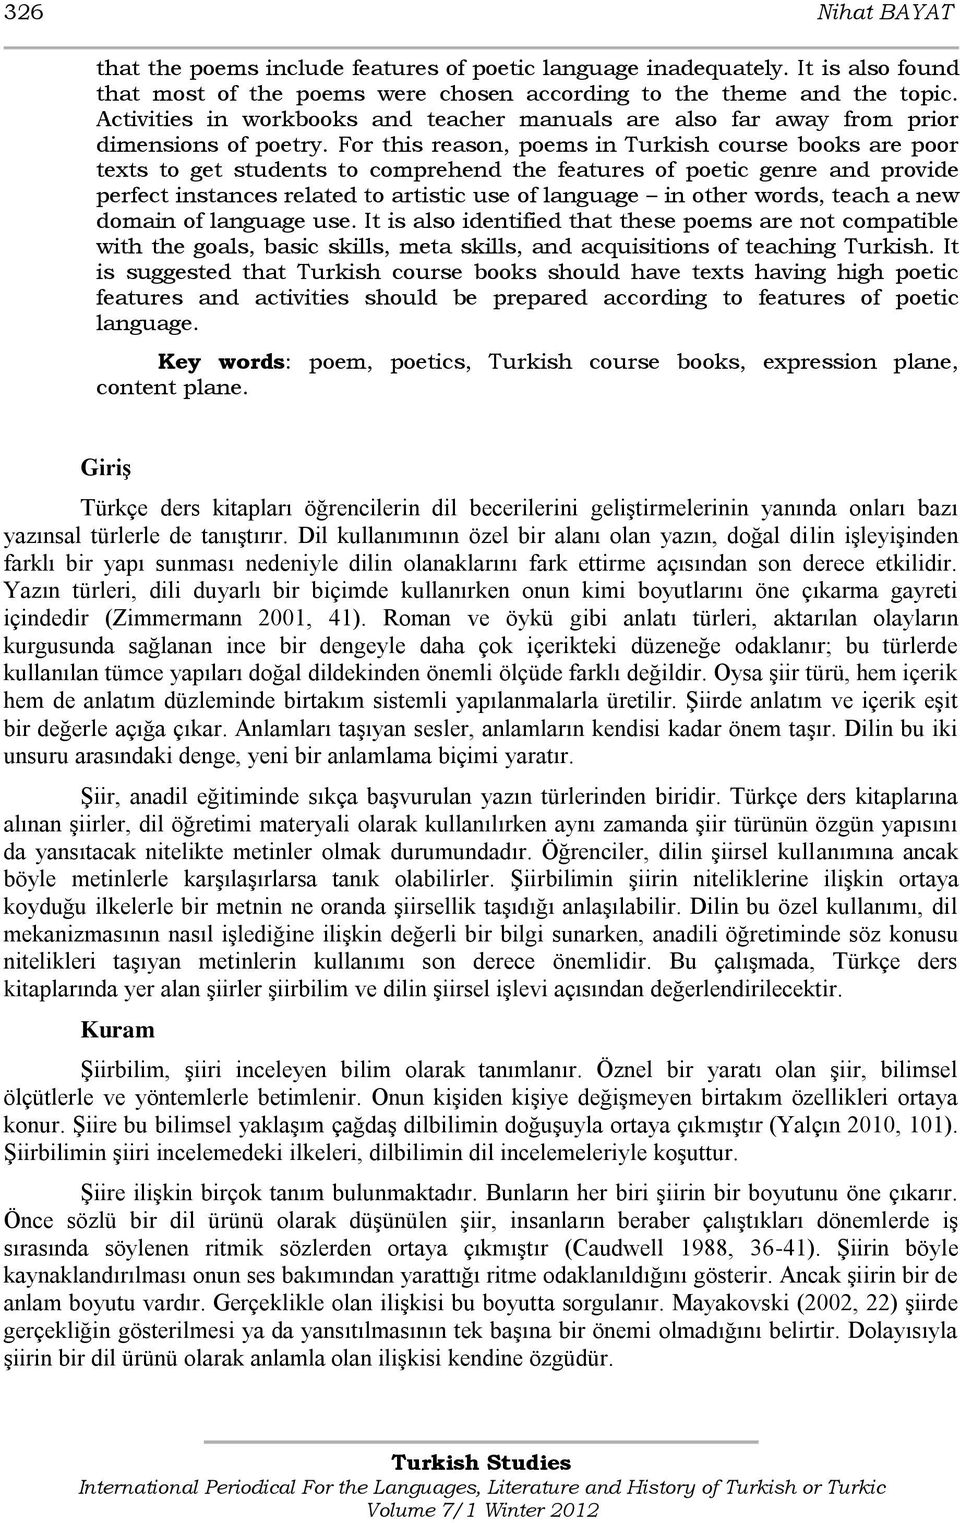 For this reason, poems in Turkish course books are poor texts to get students to comprehend the features of poetic genre and provide perfect instances related to artistic use of language in other